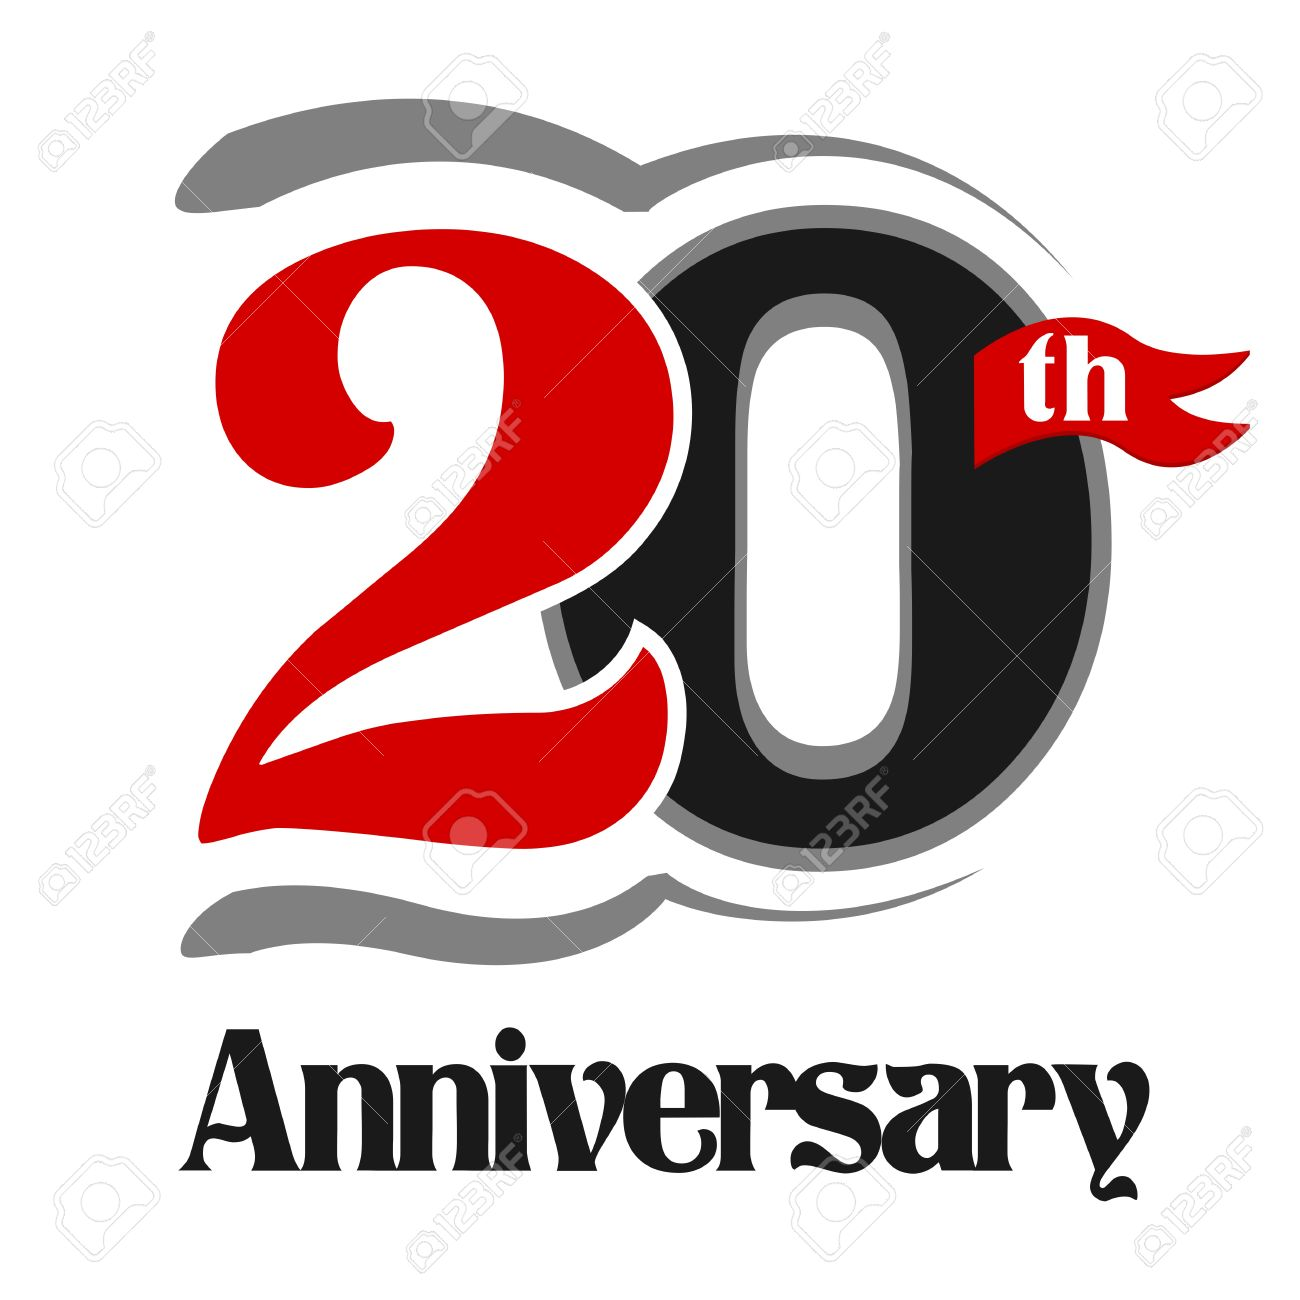 20th anniversary celebration vector logo design royalty free